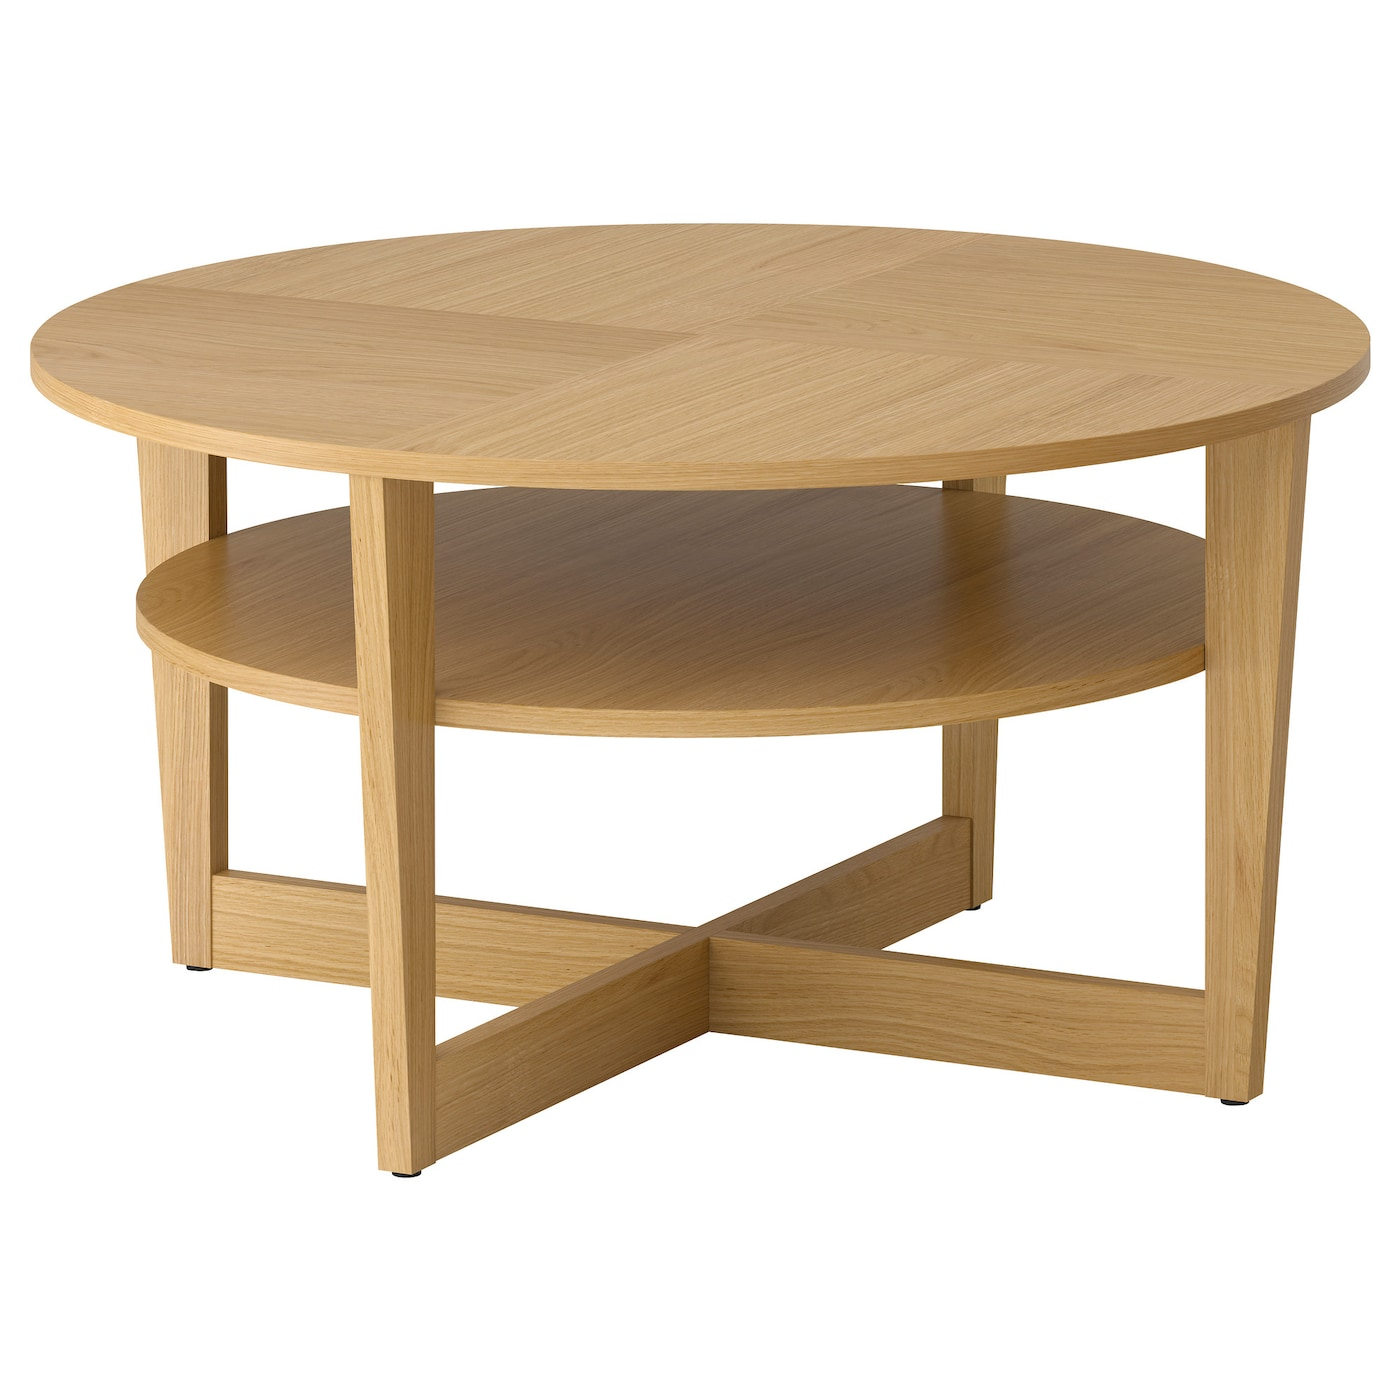 VEJMON Coffee table - oak veneer 5 cm